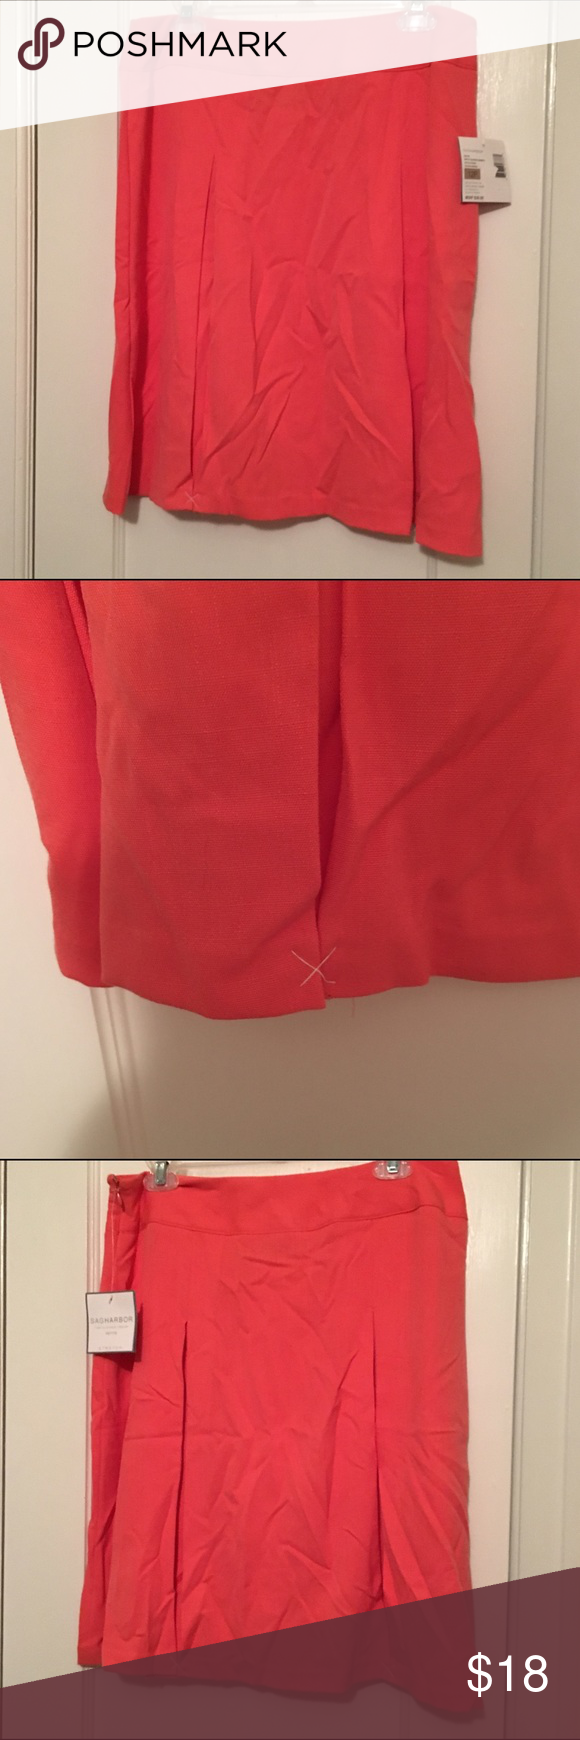 Sag Harbor Skirt Sag Harbor skirt. Very soft. Almost t-shirt-like material. Coral color. Sag Harbor Skirts Mini